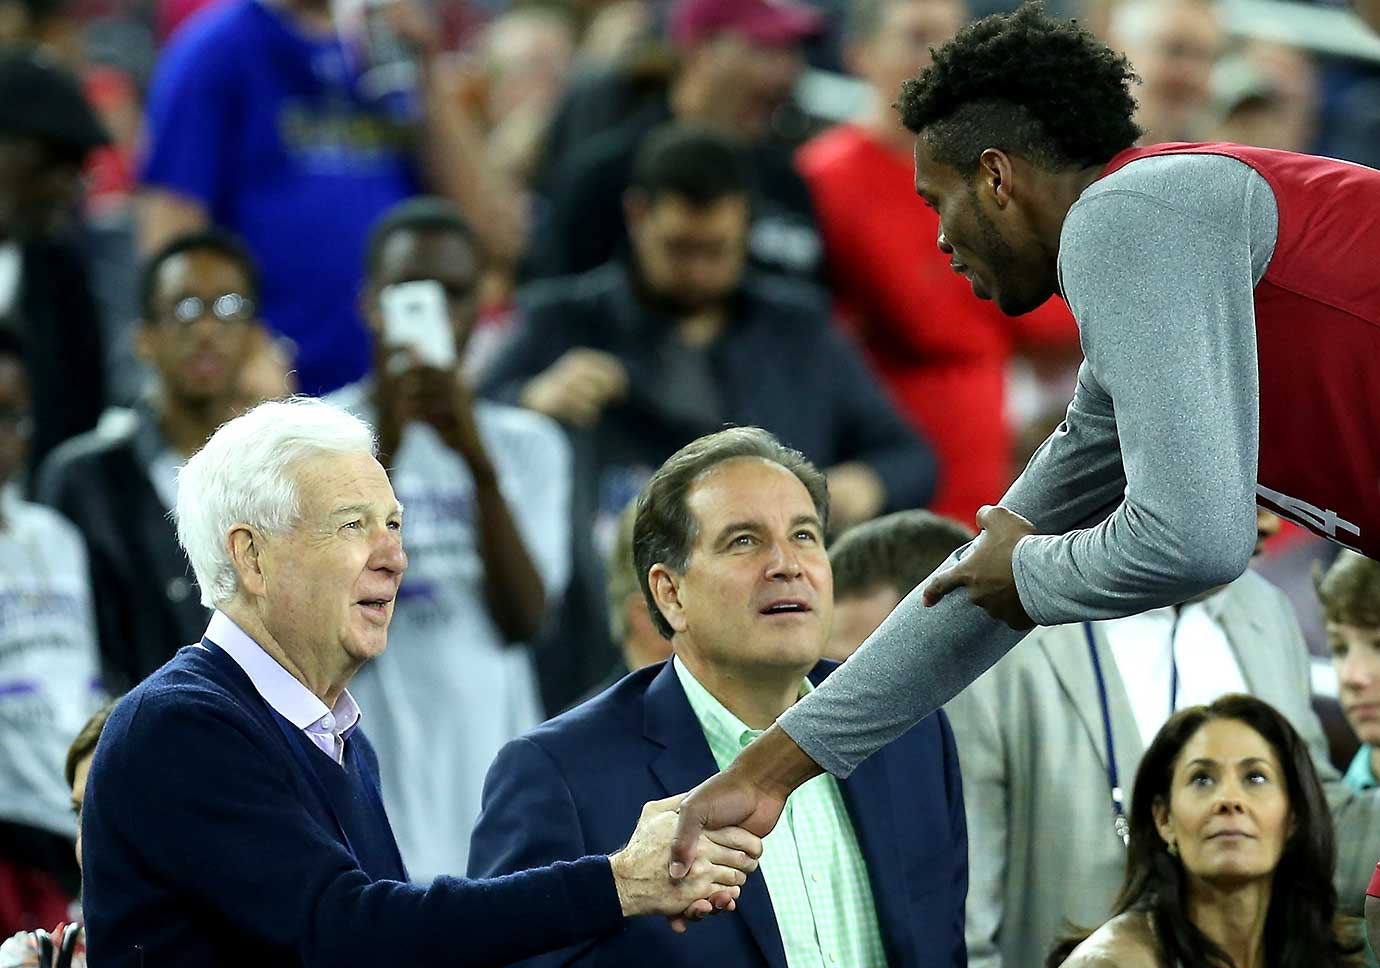 College basketball announcer Bill Raftery shakes hands with Buddy Hield of the Oklahoma Sooners as Jim Nantz looks on during a practice session for the Final Four in Houston.